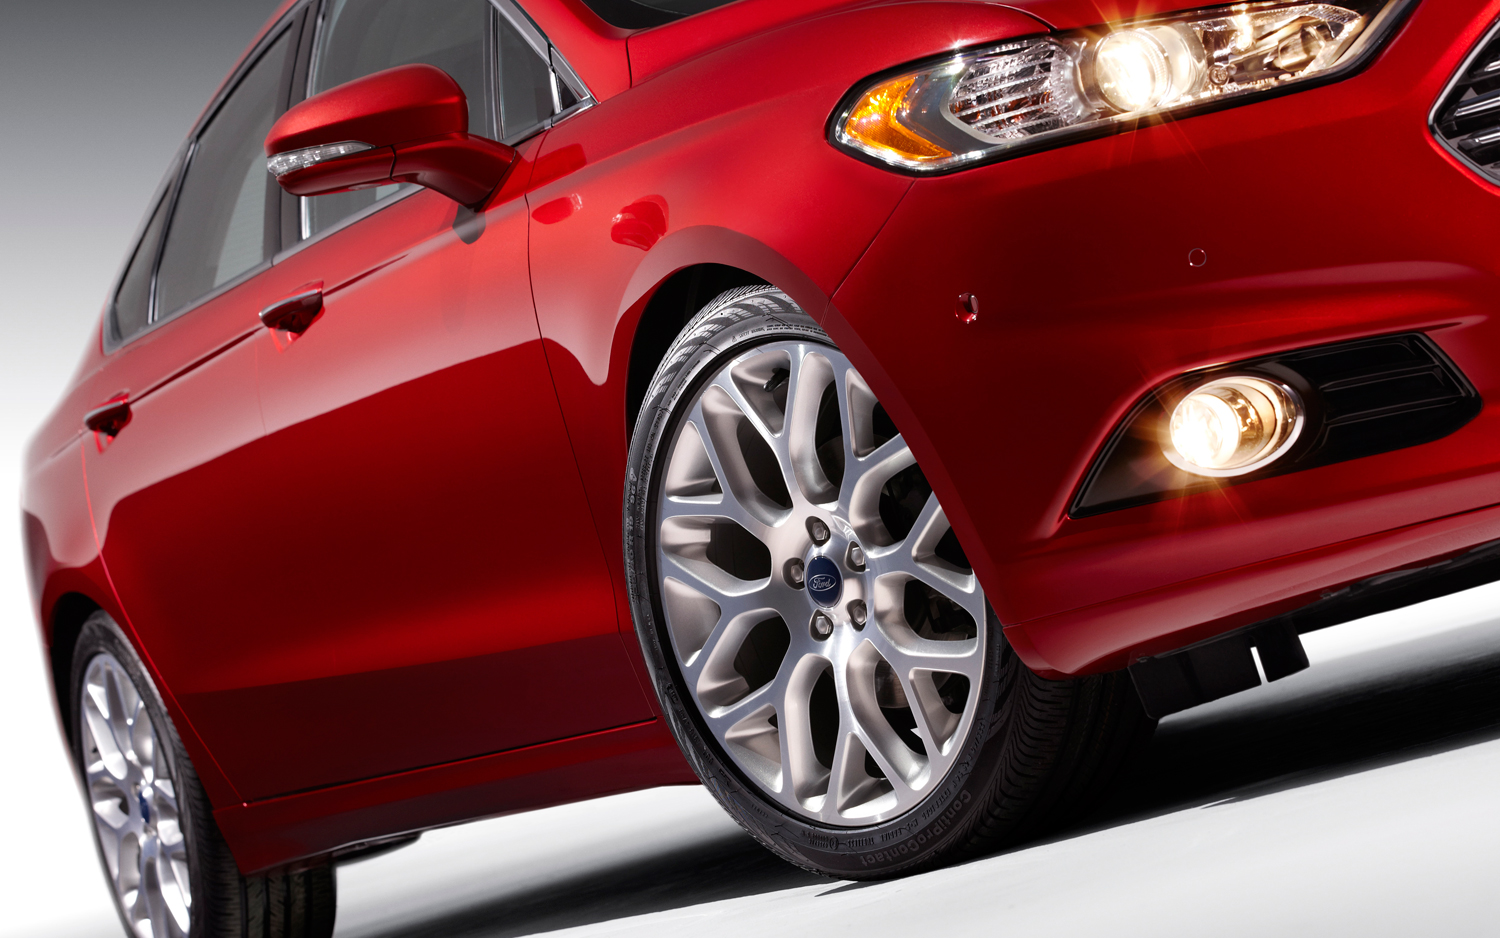 Ford Fusion wheels #4